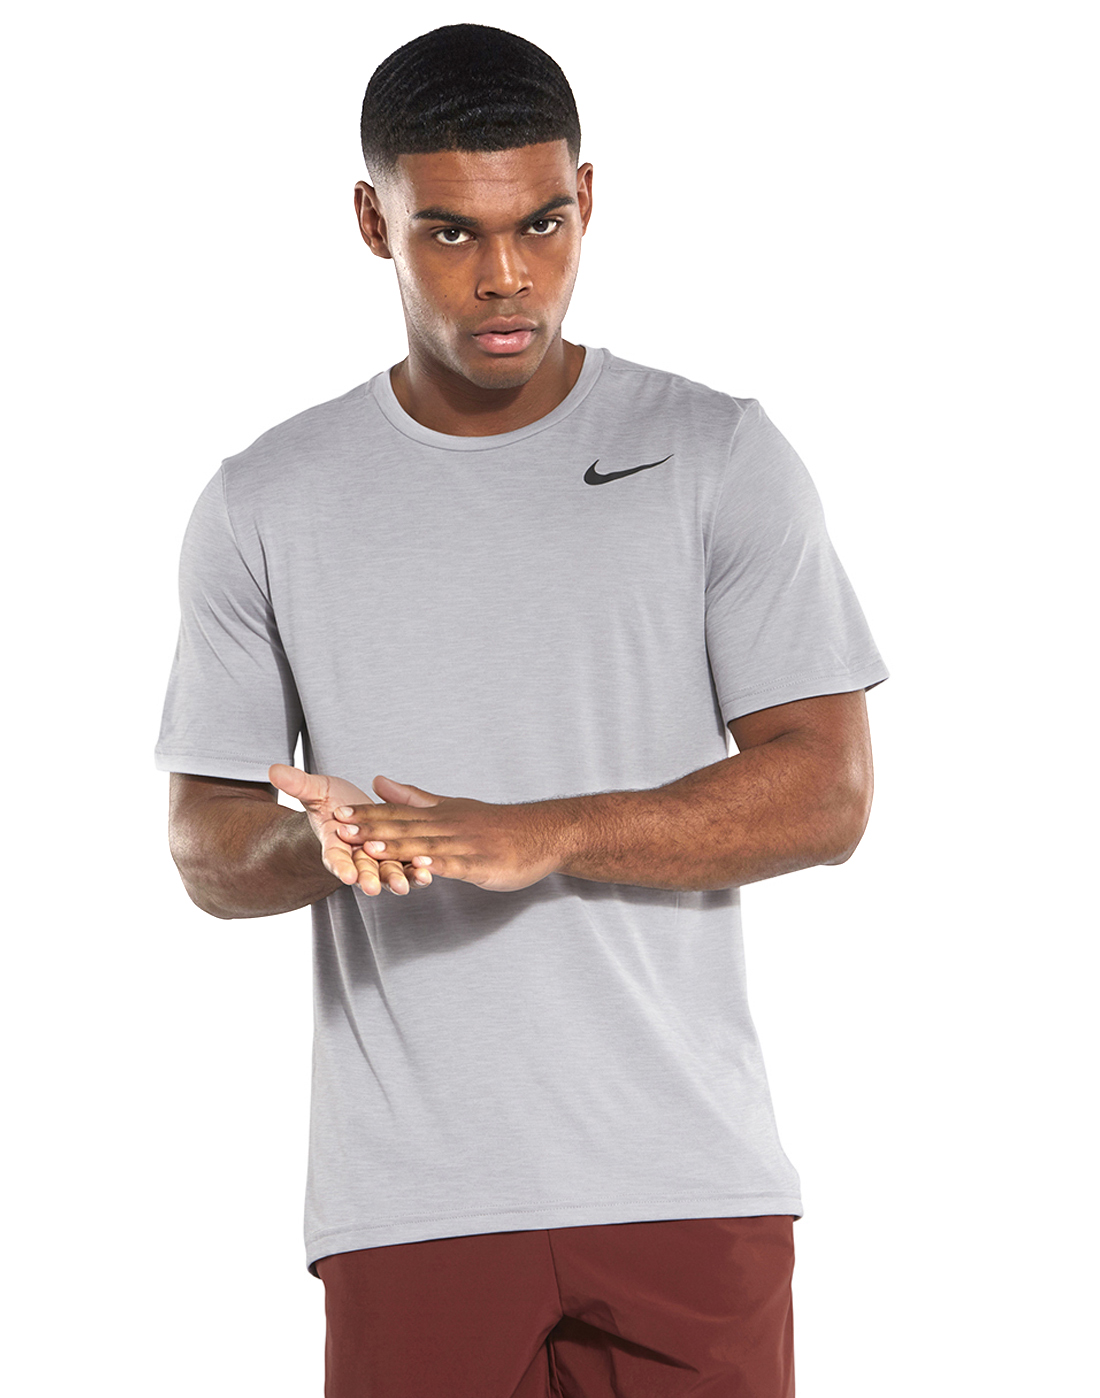 67391d70 Men's Grey Nike Hyper Dry T-Shirt | Life Style Sports